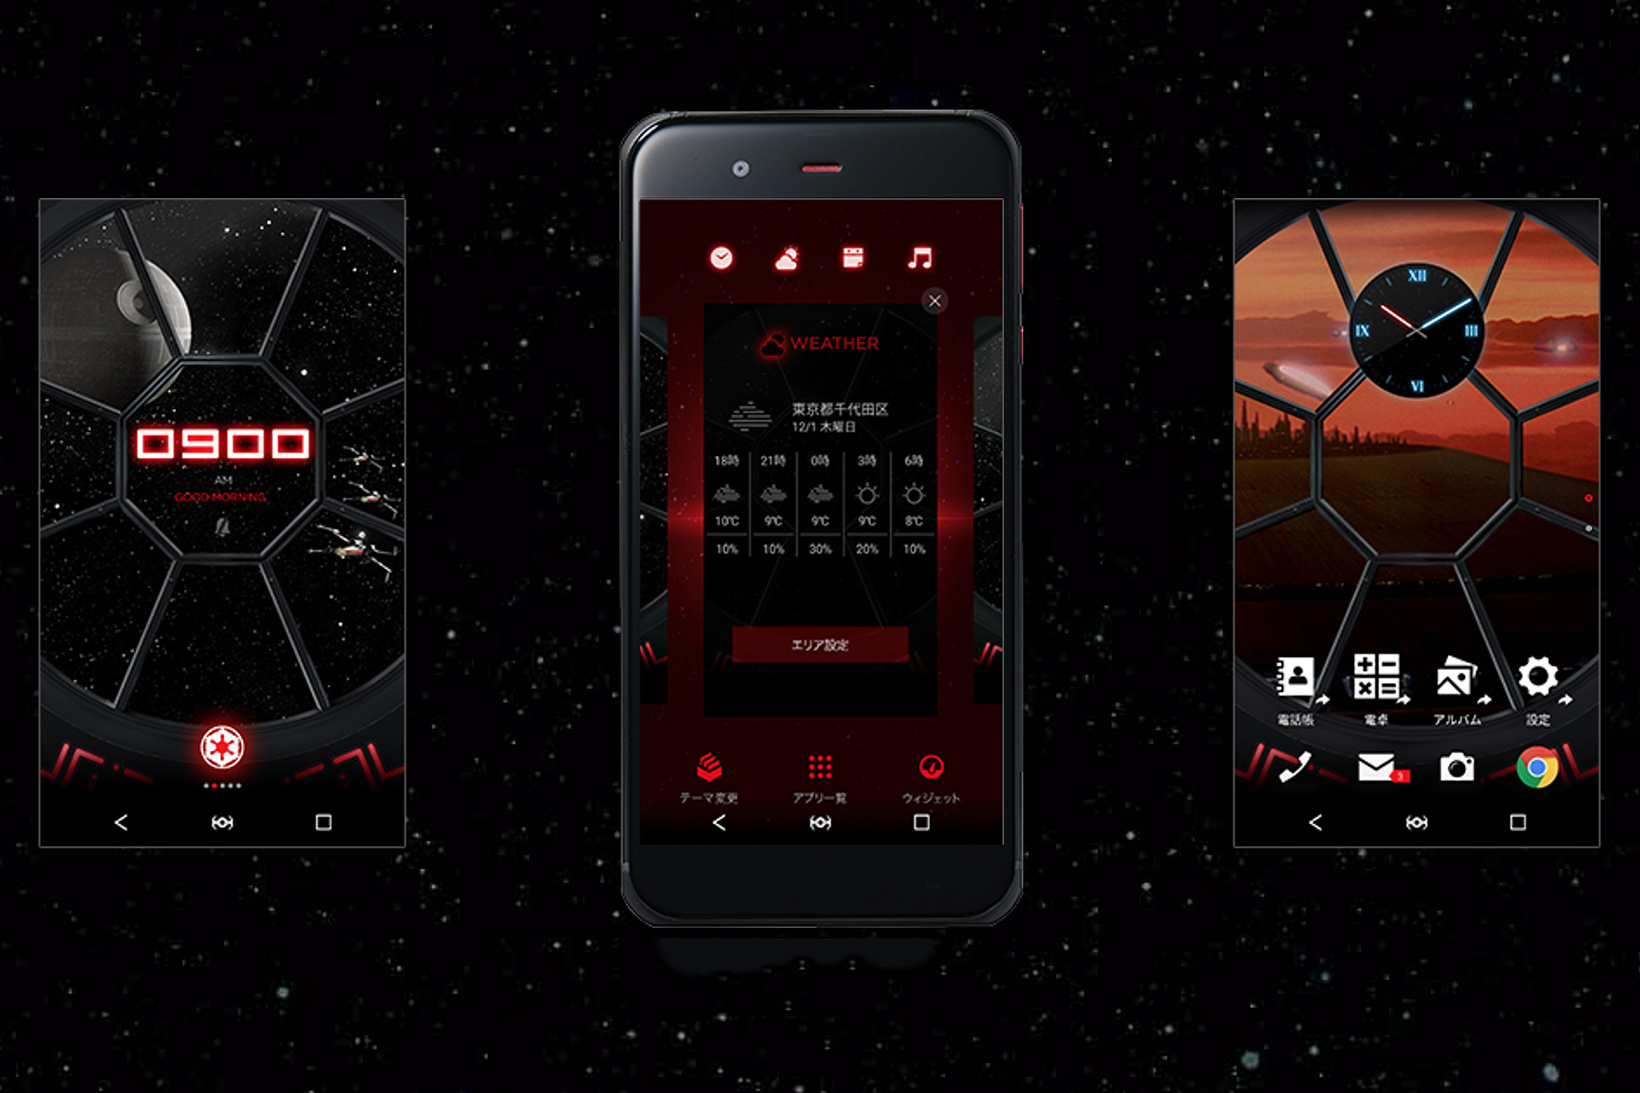 SHARP Japan Release 'STAR WARS'-Themed Smartphones, Better Than an iPhone or Galaxy!